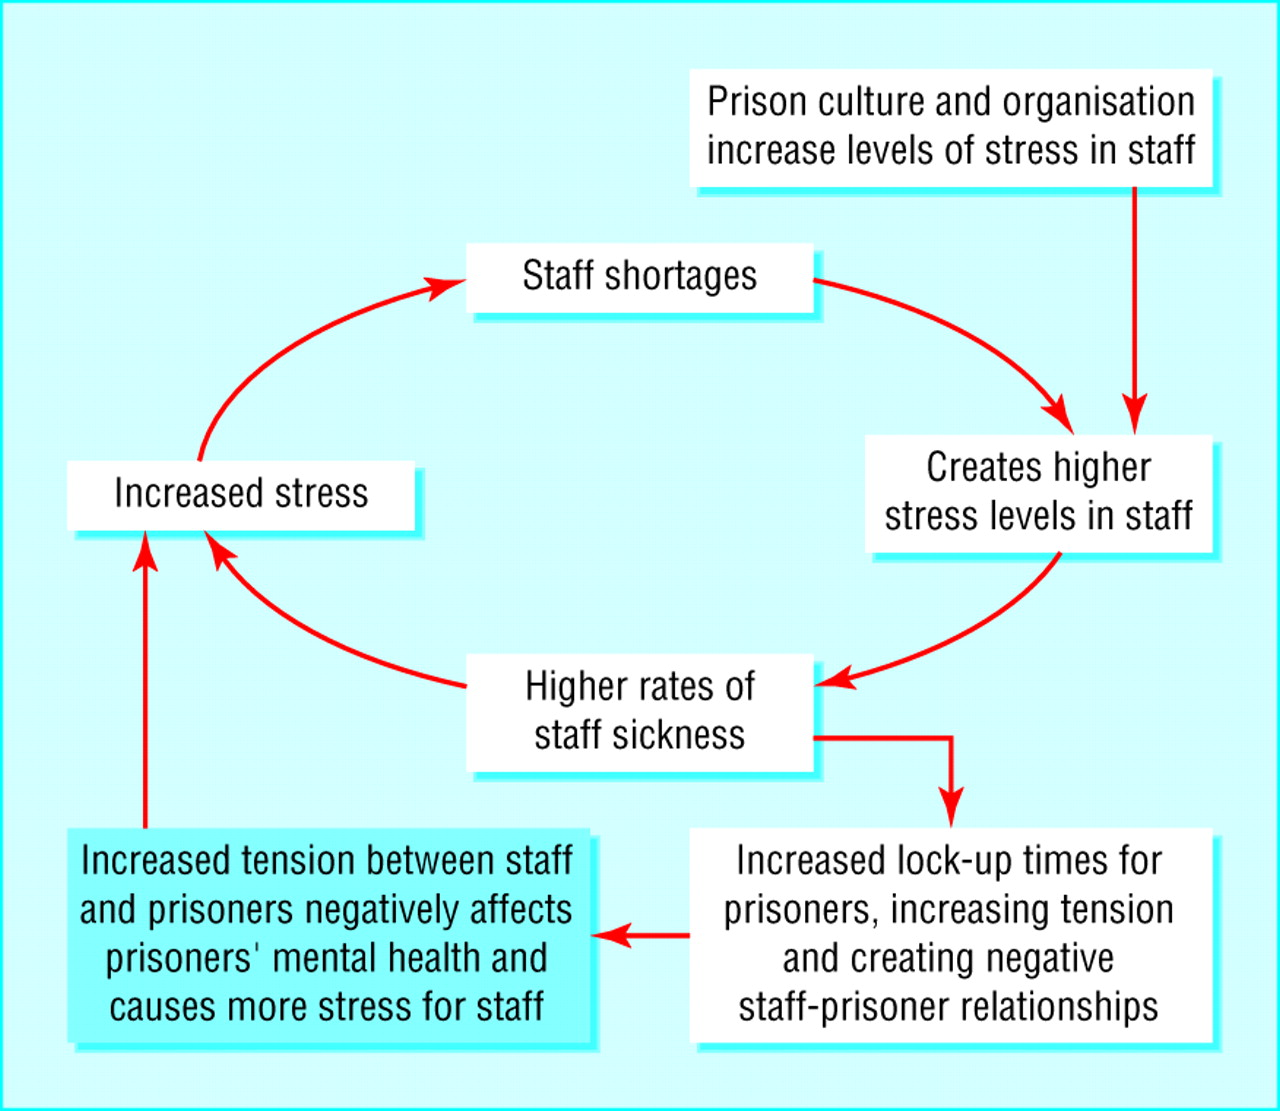 A Systematic Review and Meta-Analysis of Yoga and Mindfulness Meditation in Prison